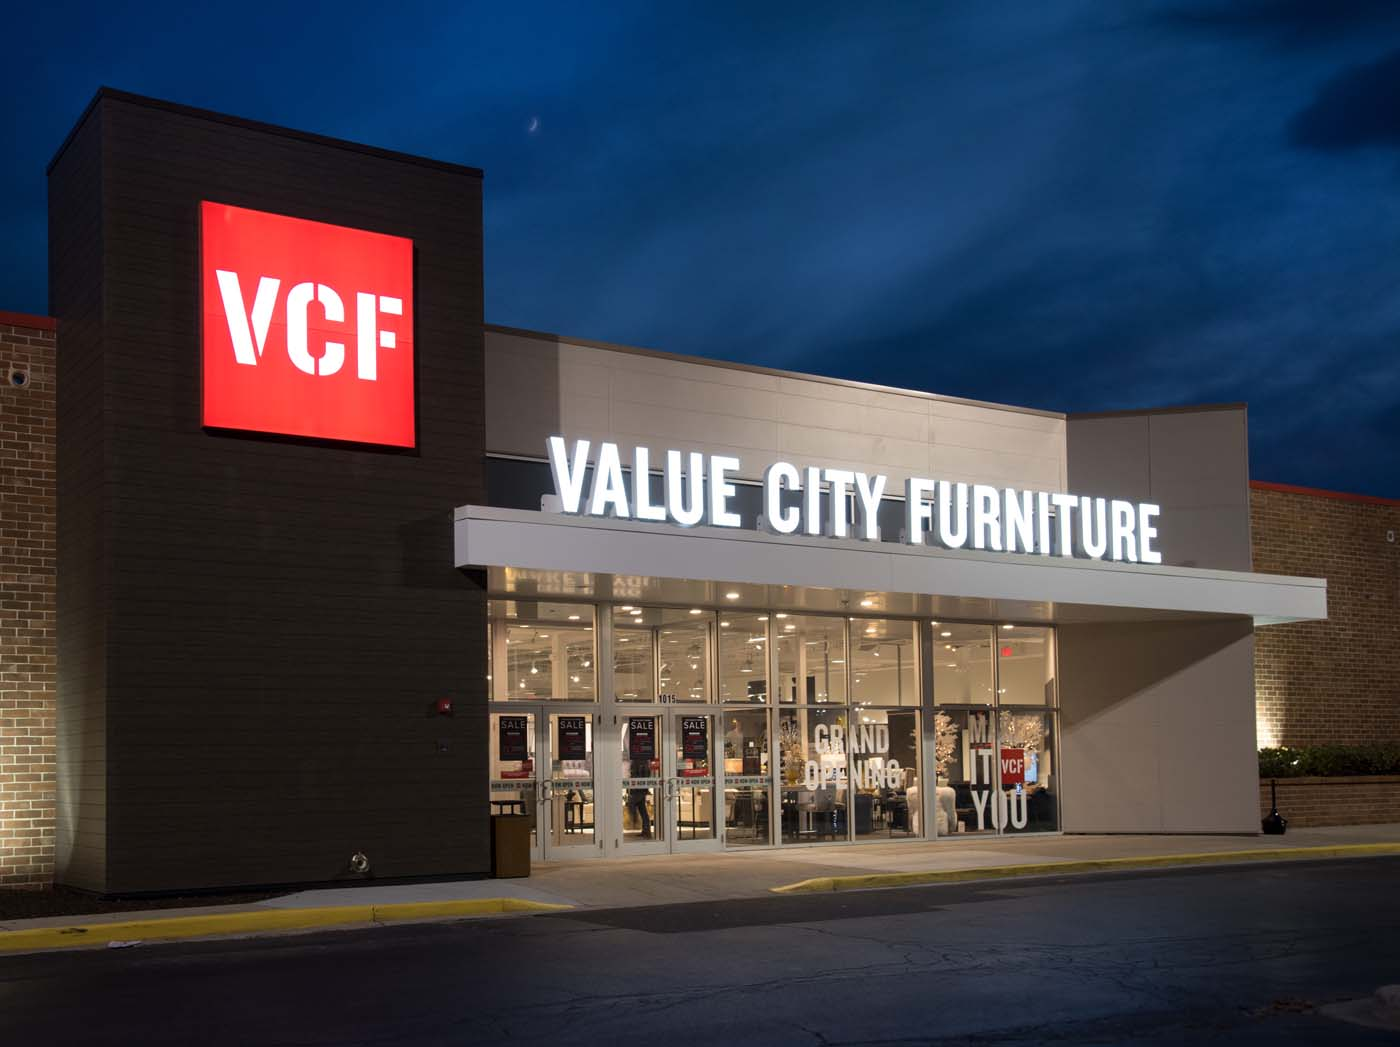 Value City Furniture Sign